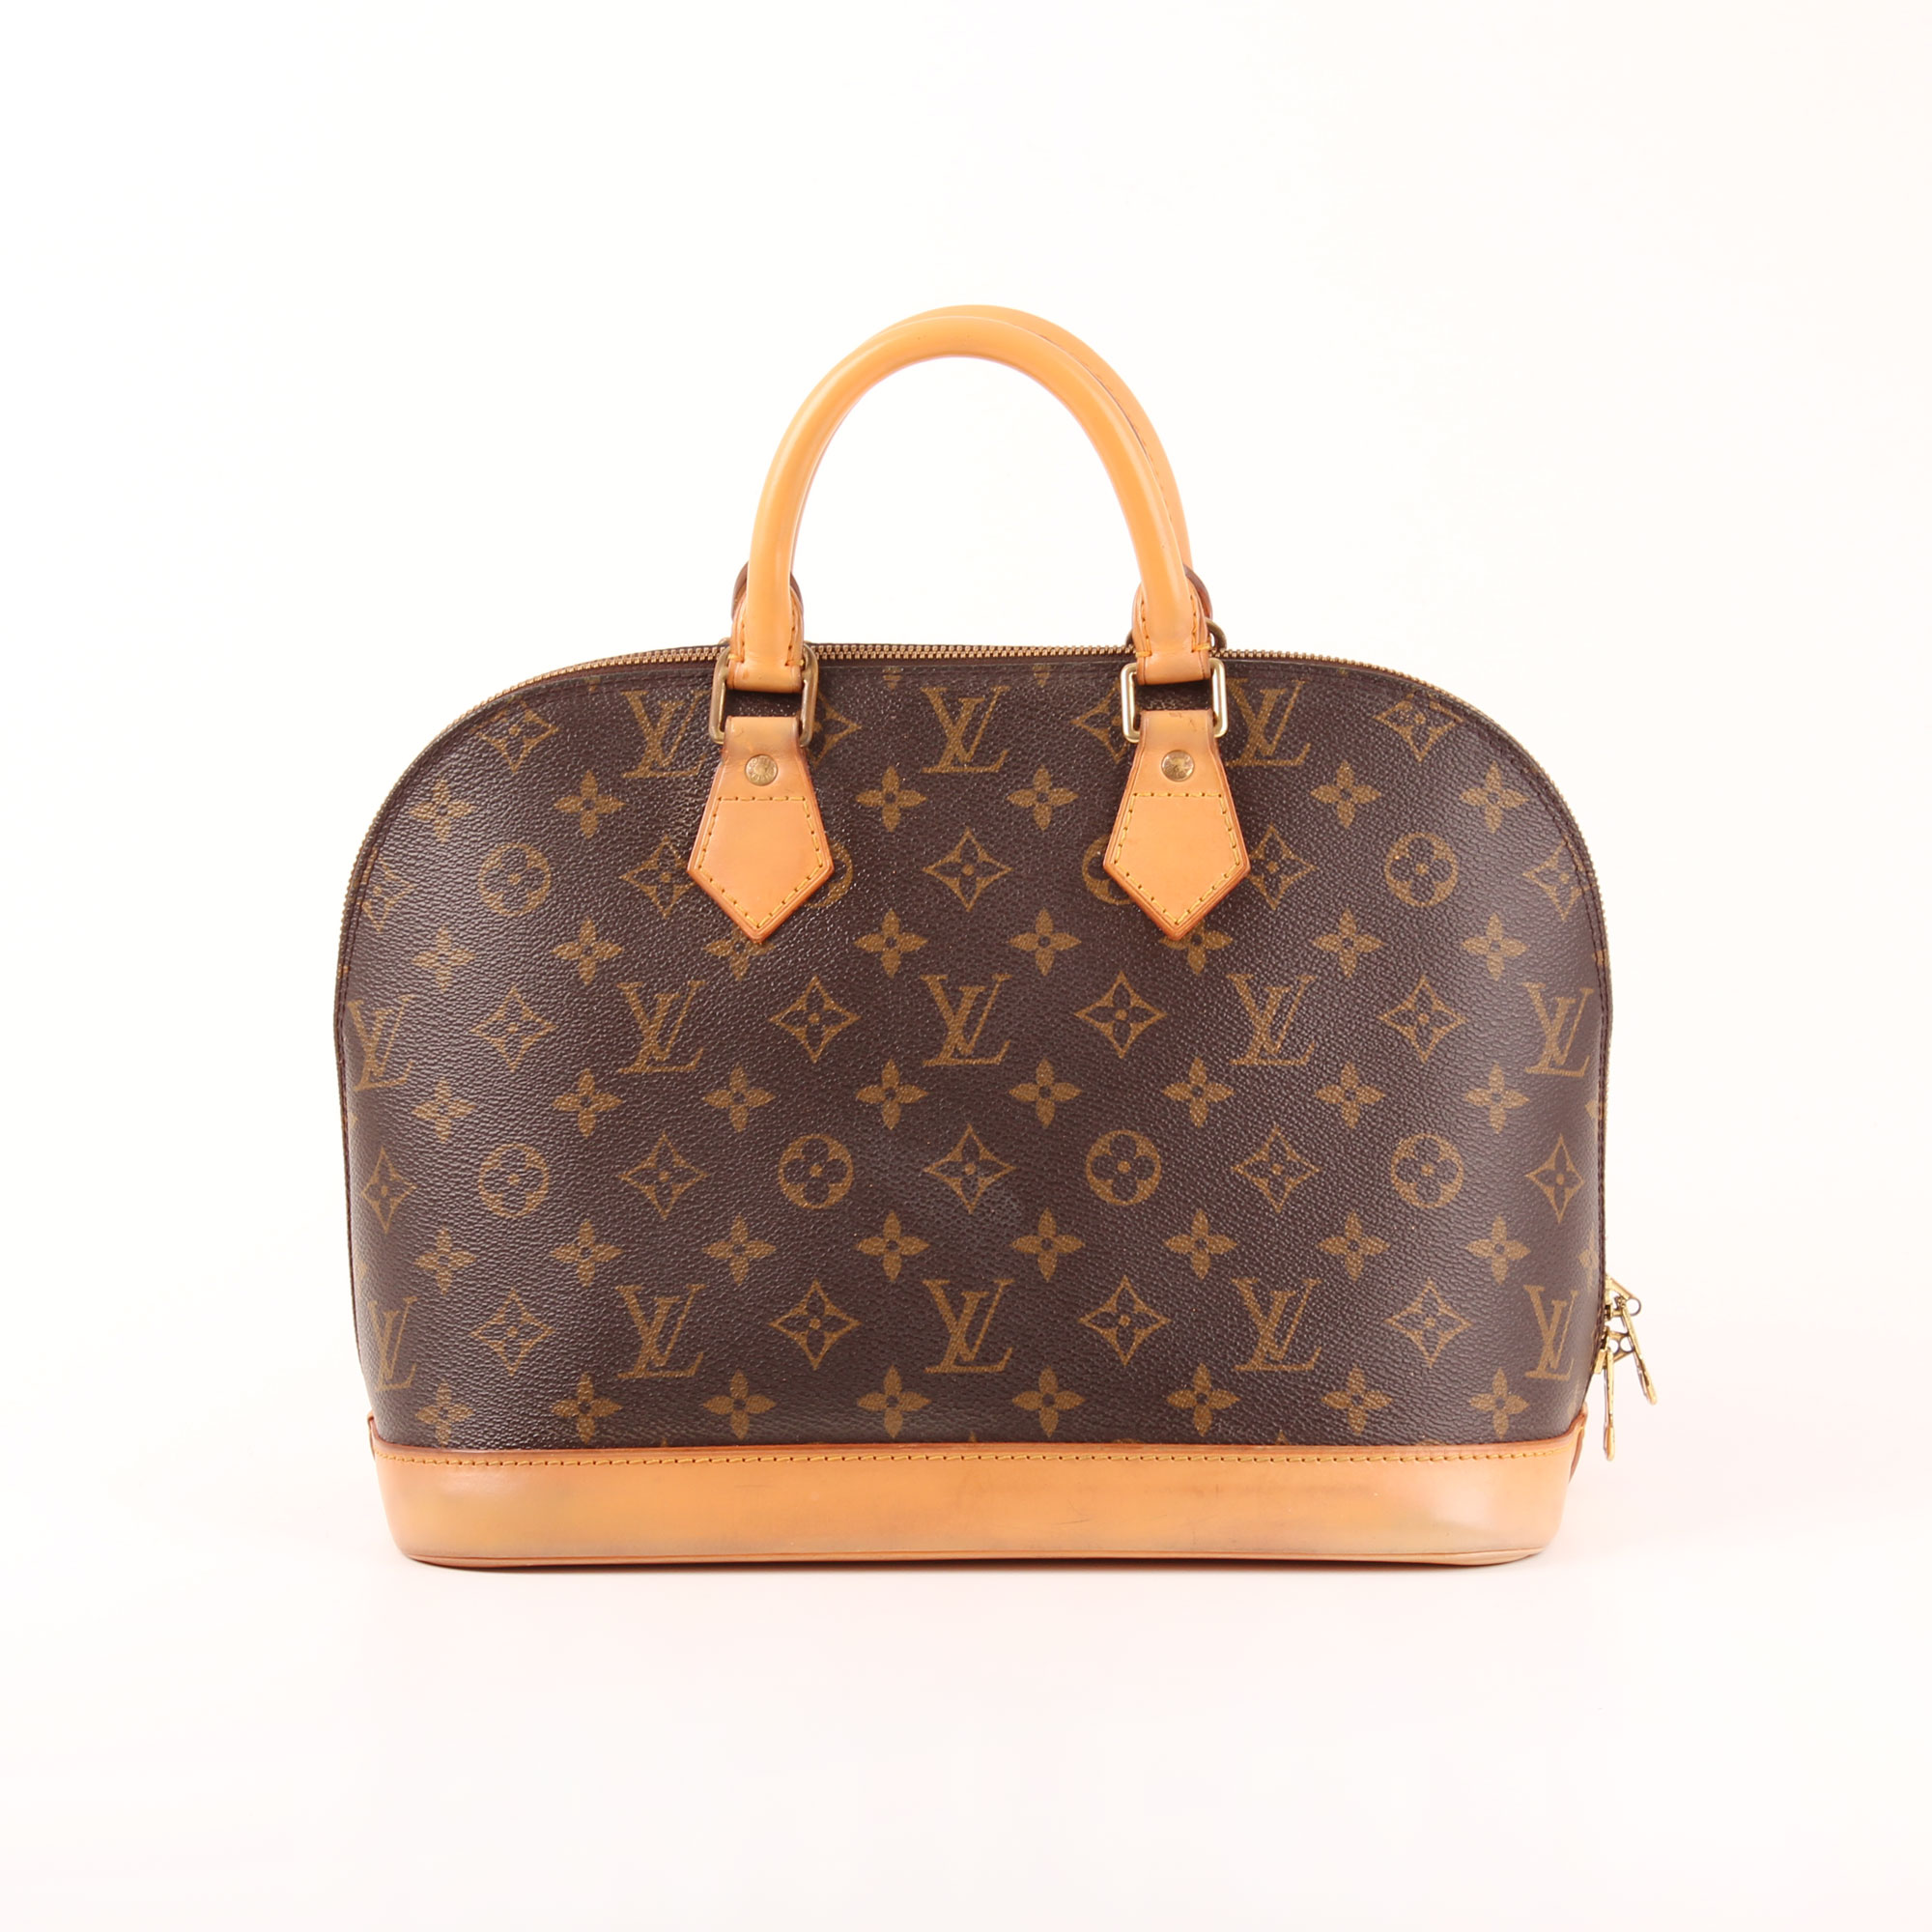 louis vuitton alma bag pm monogram i cbl bags. Black Bedroom Furniture Sets. Home Design Ideas